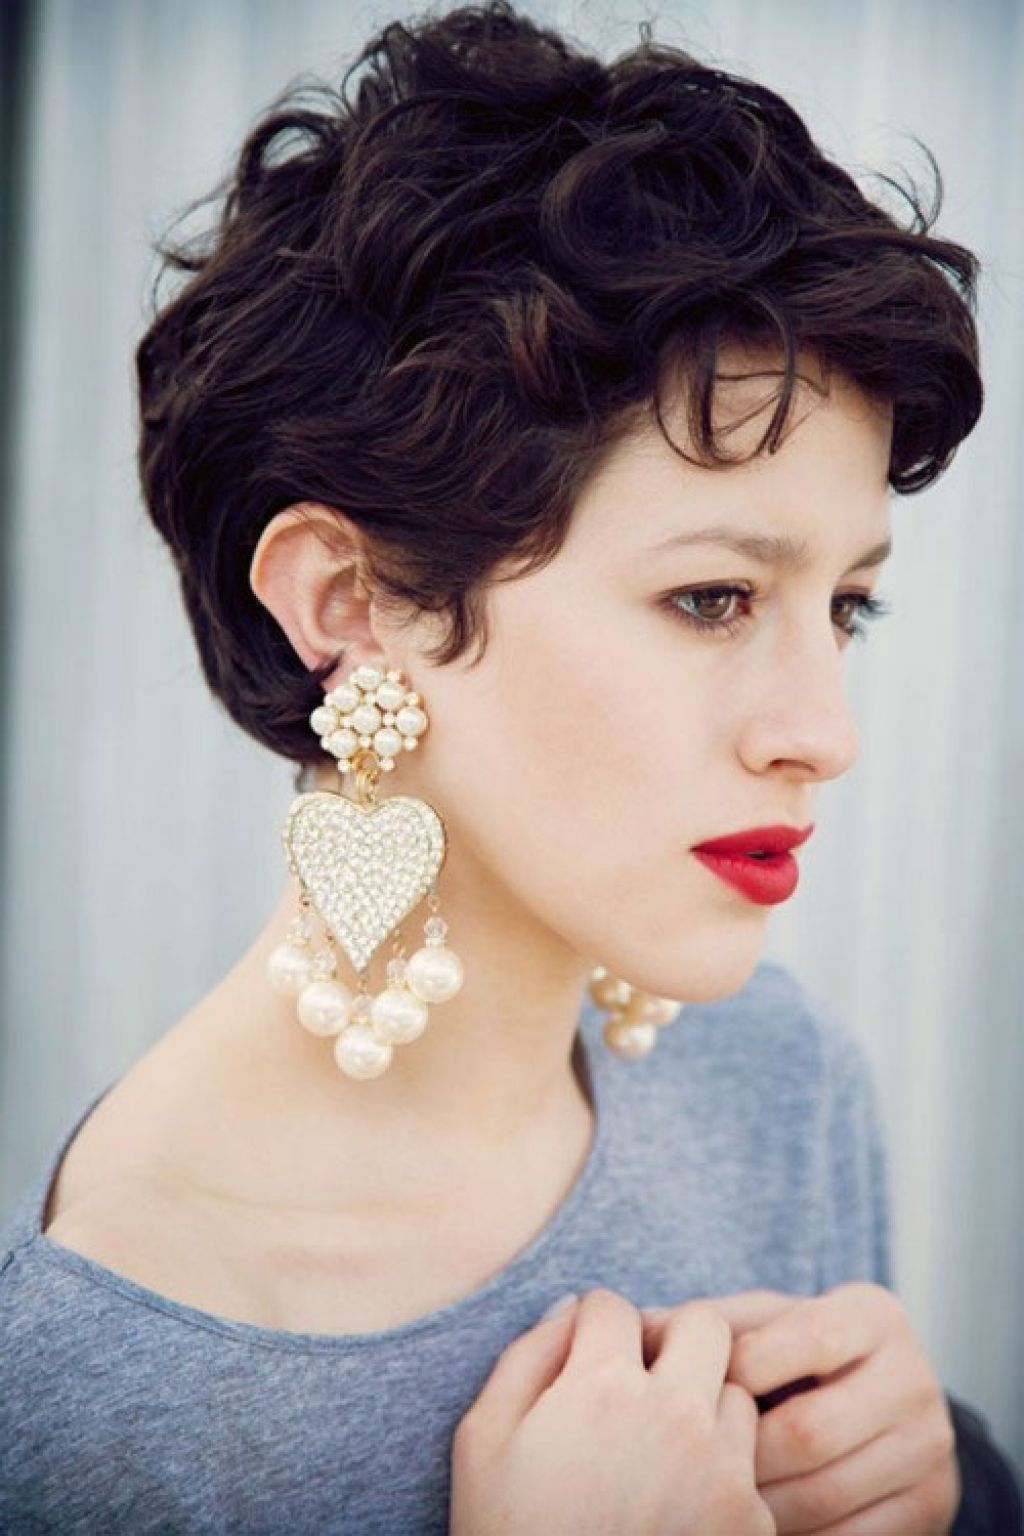 Short Pixie Haircuts For Thick Hair Curly Pixie Hairstyles Curly Pixie Haircuts Thick Hair Styles